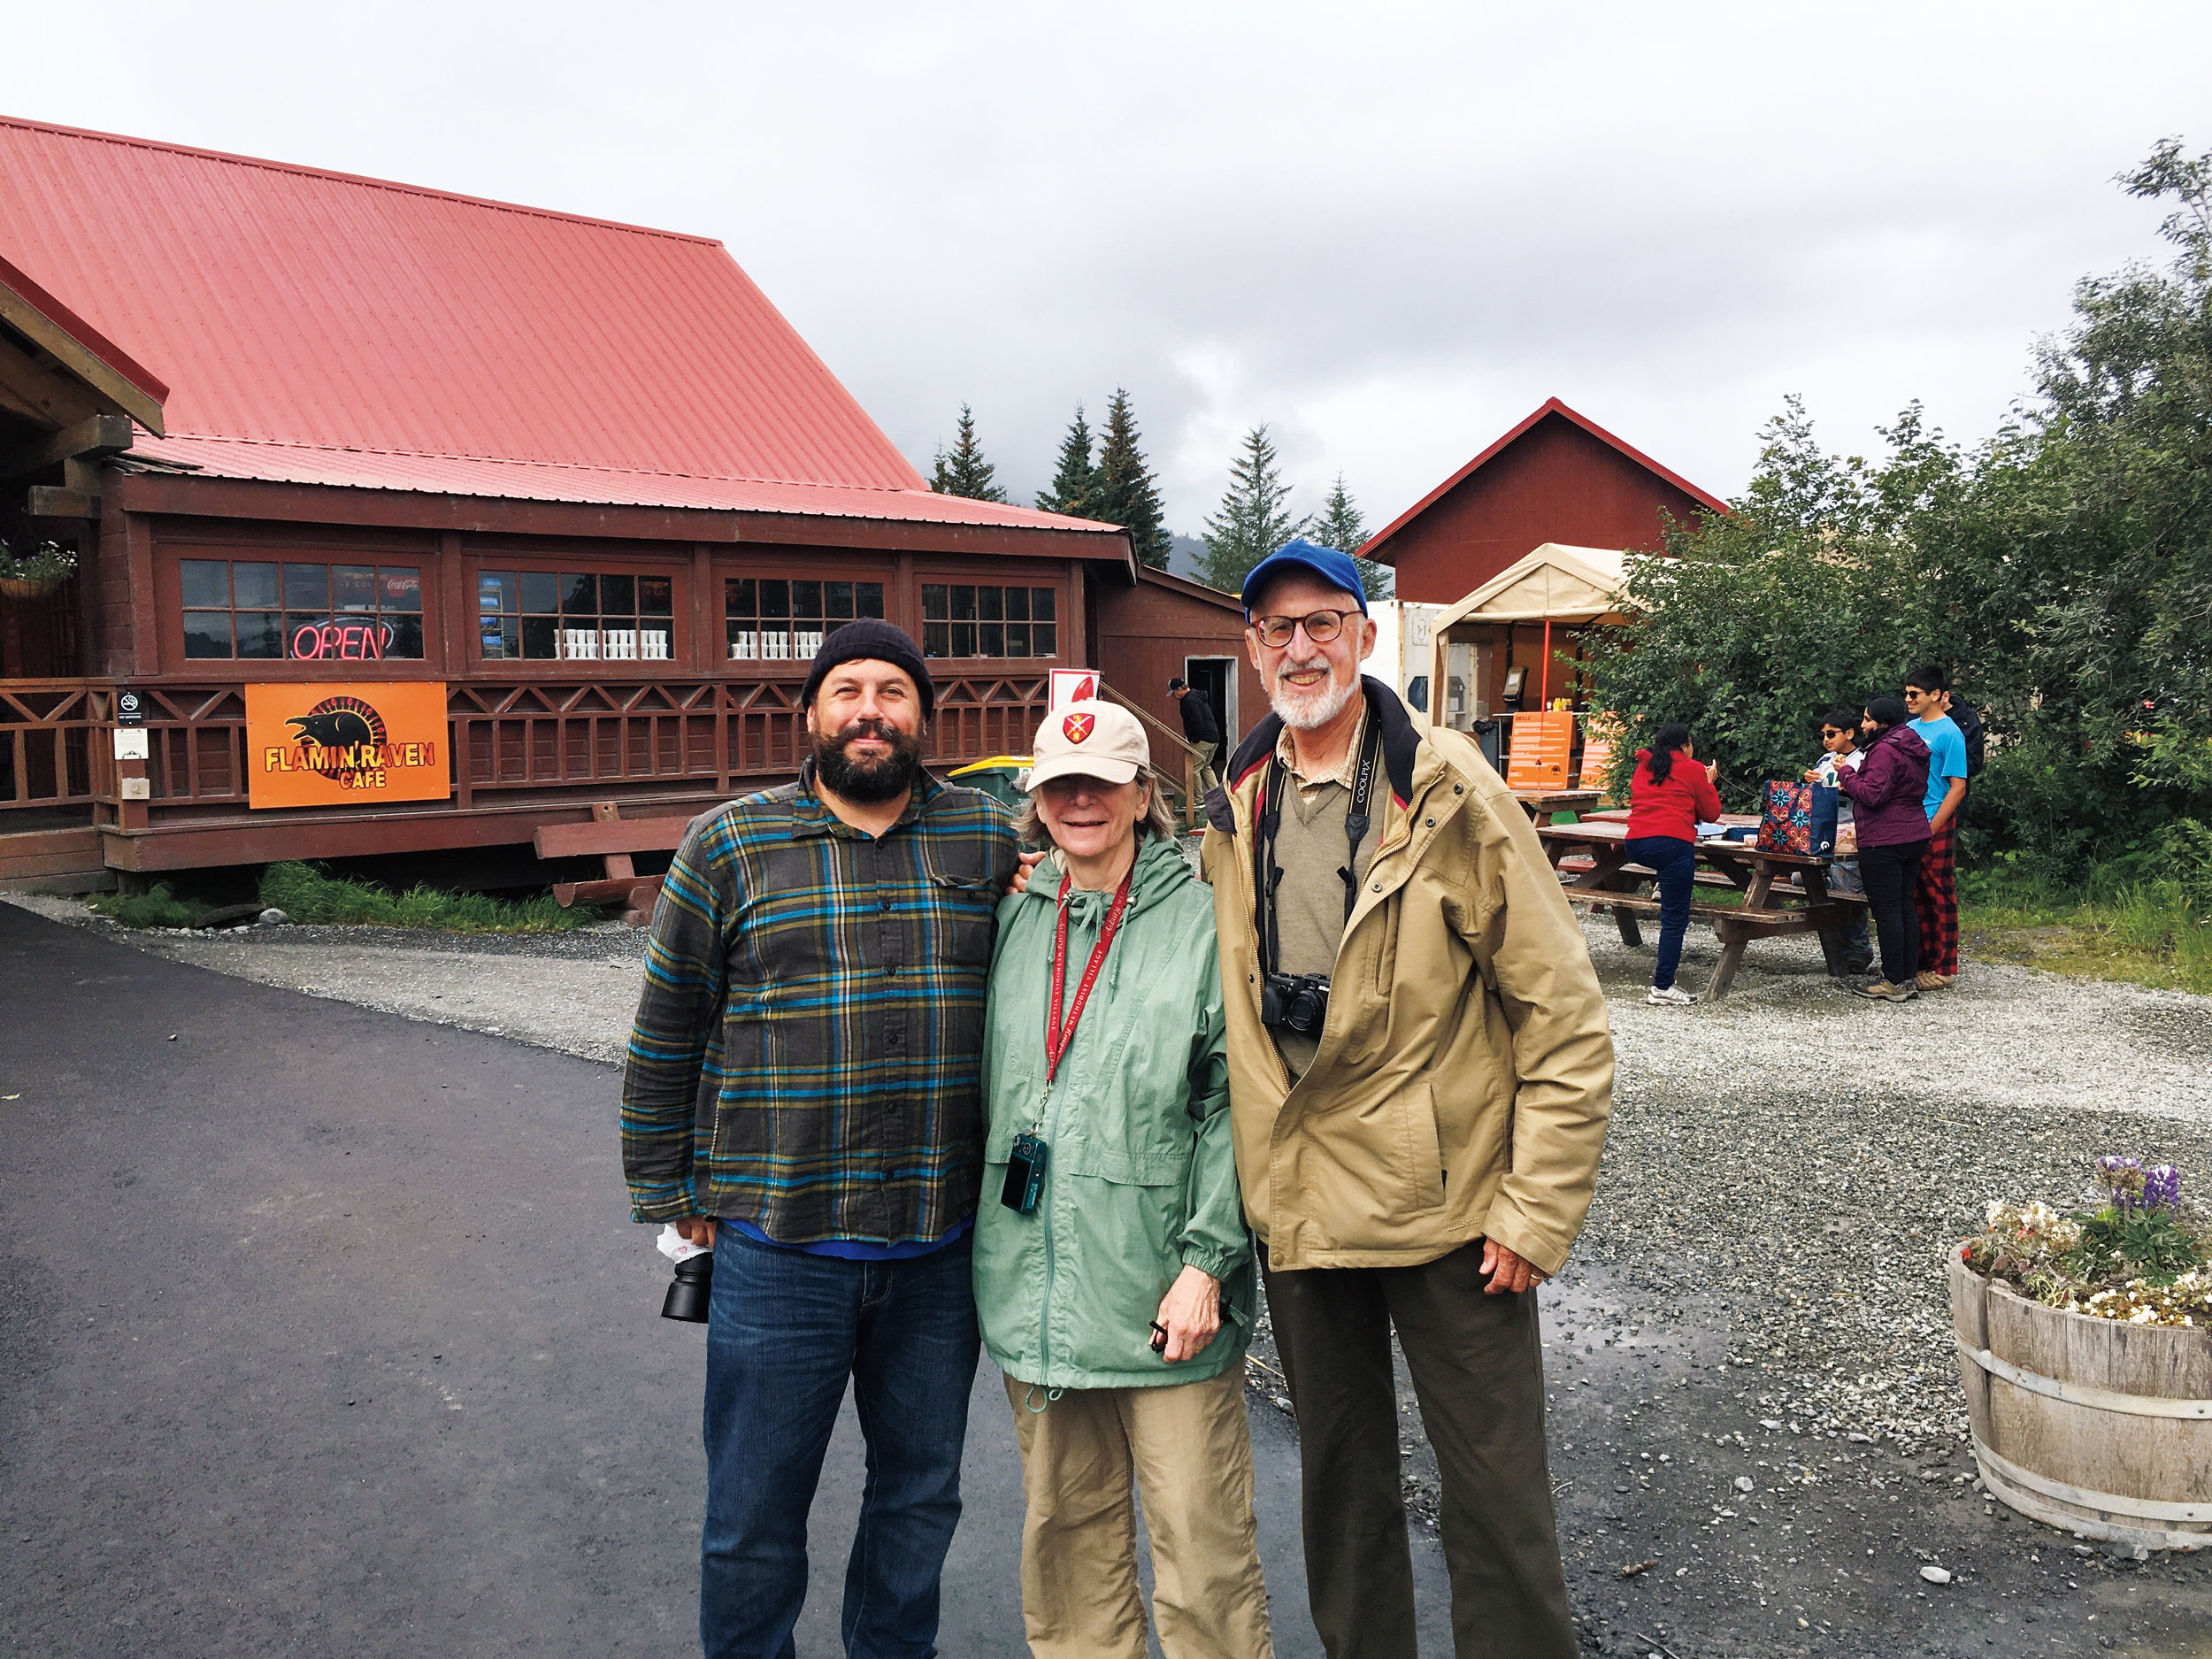 Geoff DeVito '95 (l.) recognized Jay Hatch '58 and his wife, Marolyn (center), in Alaska because of Jay's SPS hat.